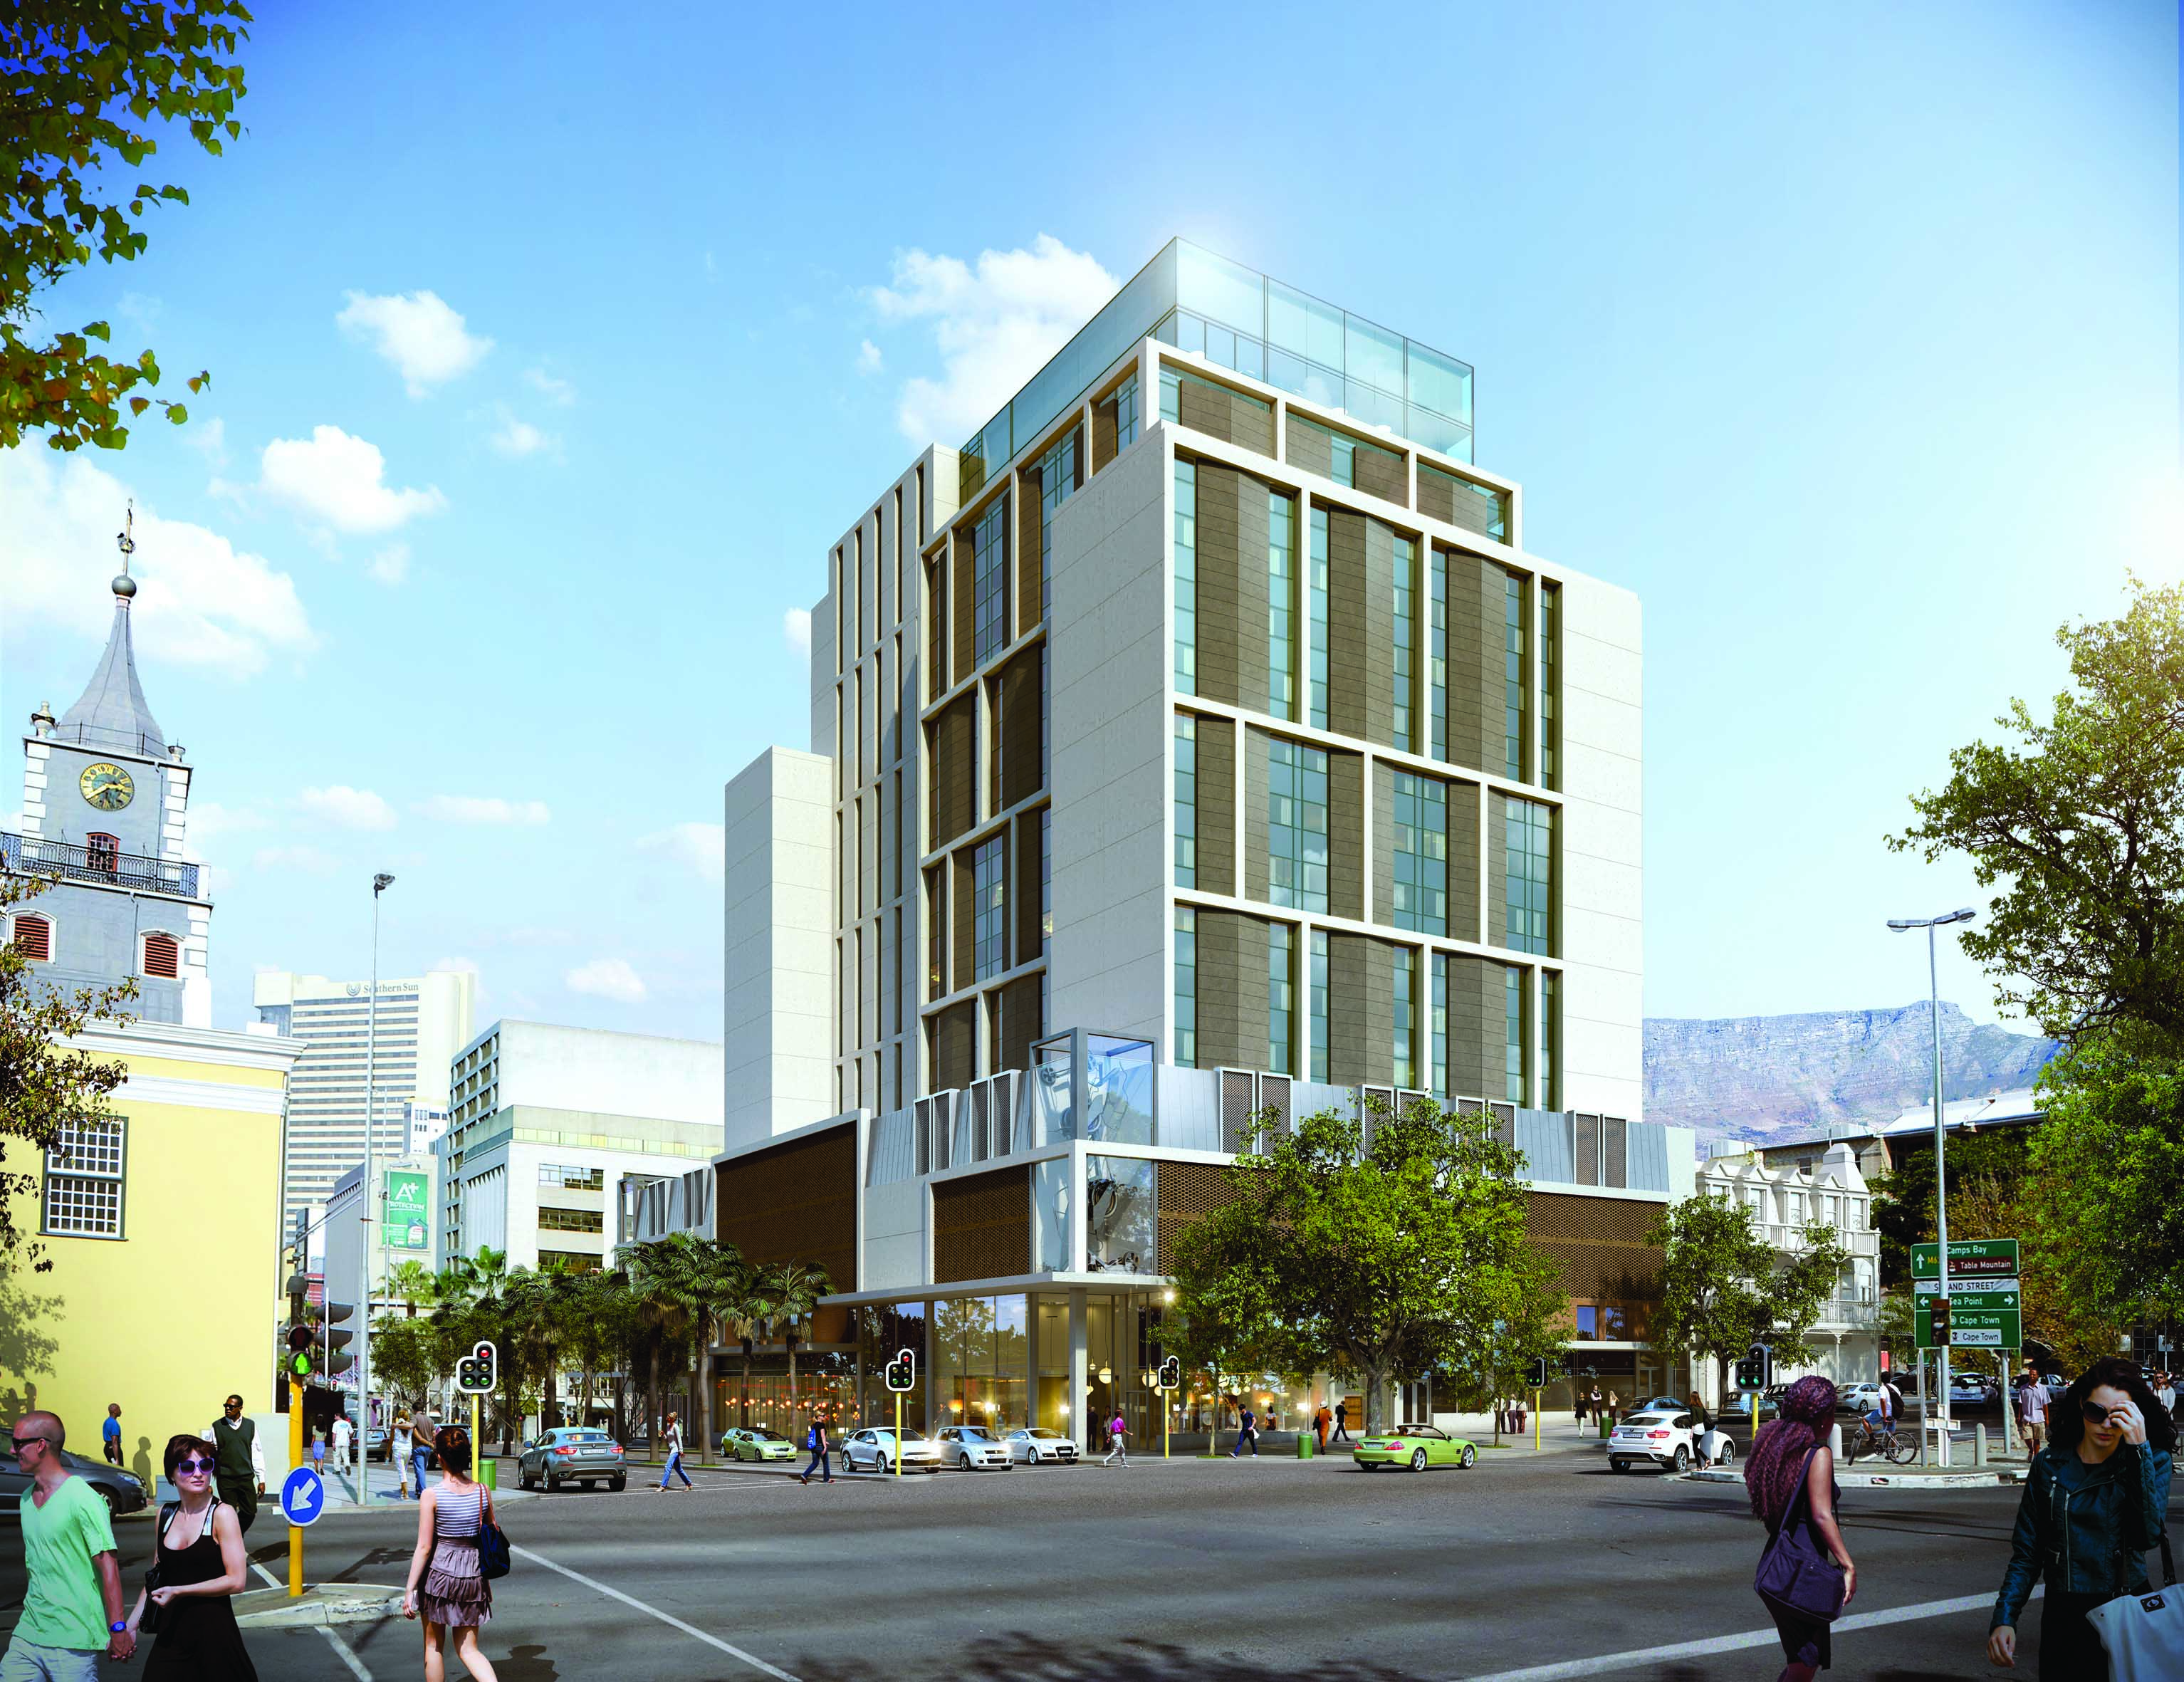 An artist's impression of the new hotel.